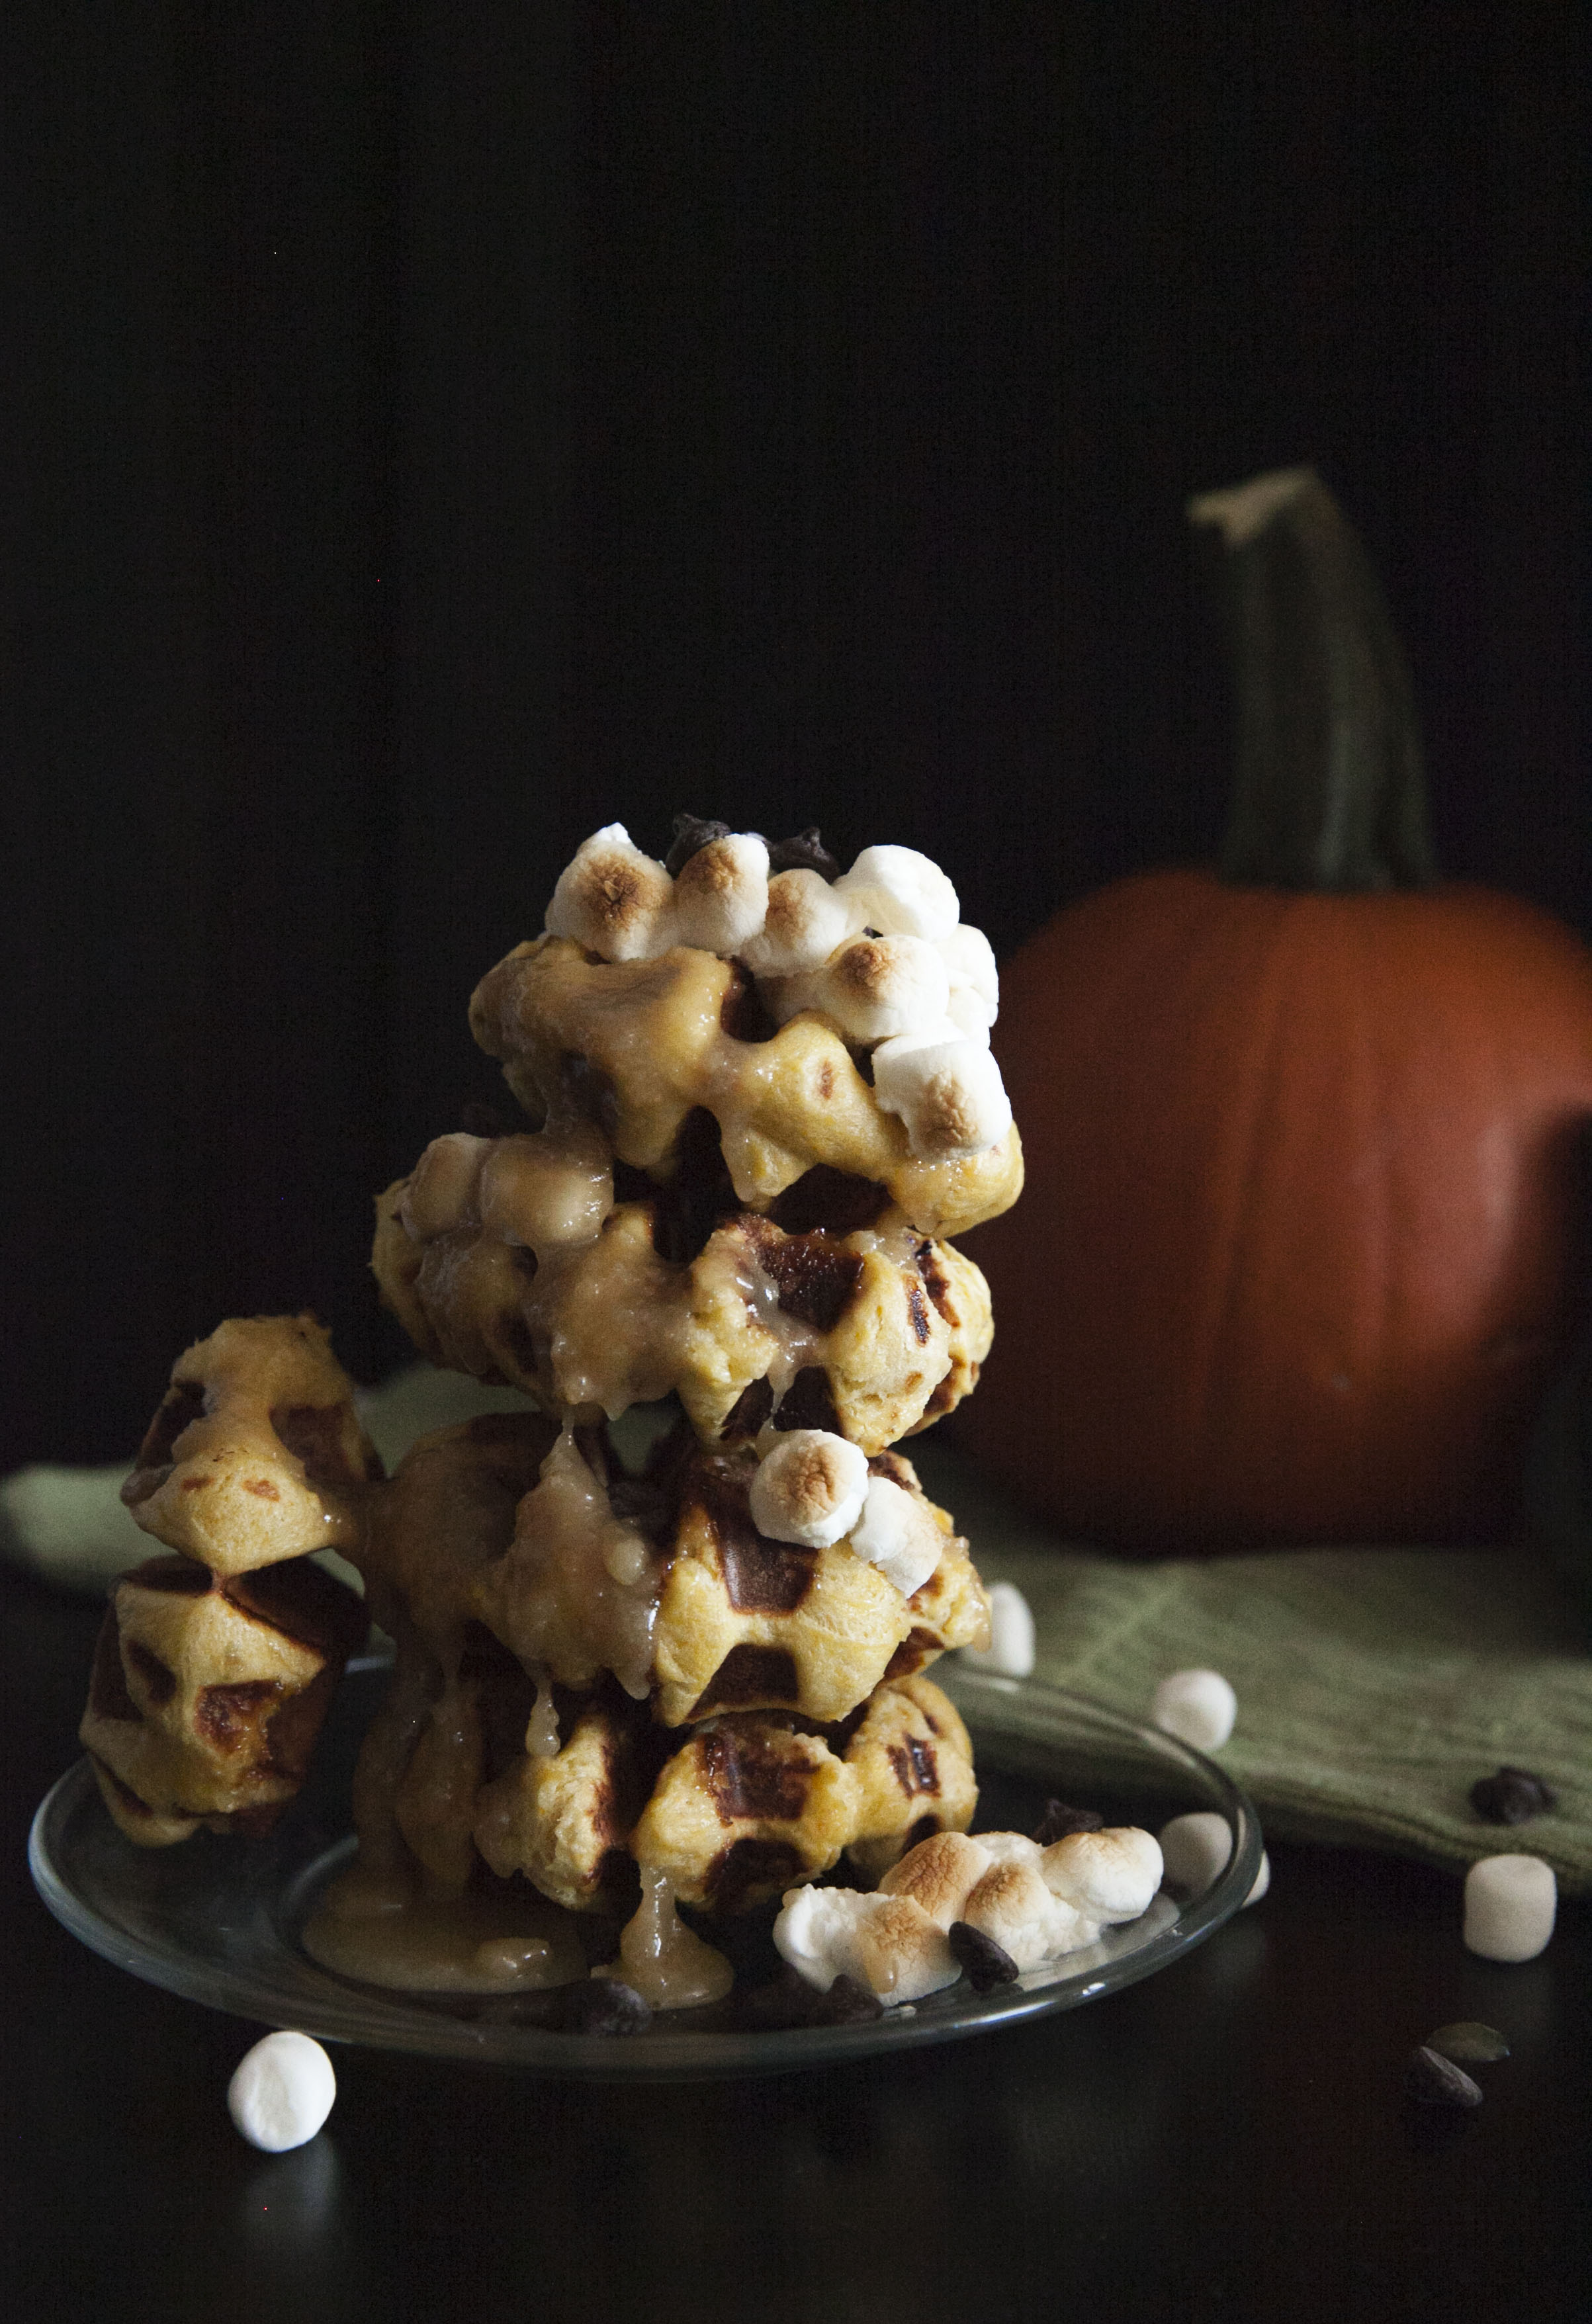 ... sweet-potato-liege-waffles-with-caramel-syrup-and-toasted-marshmallows